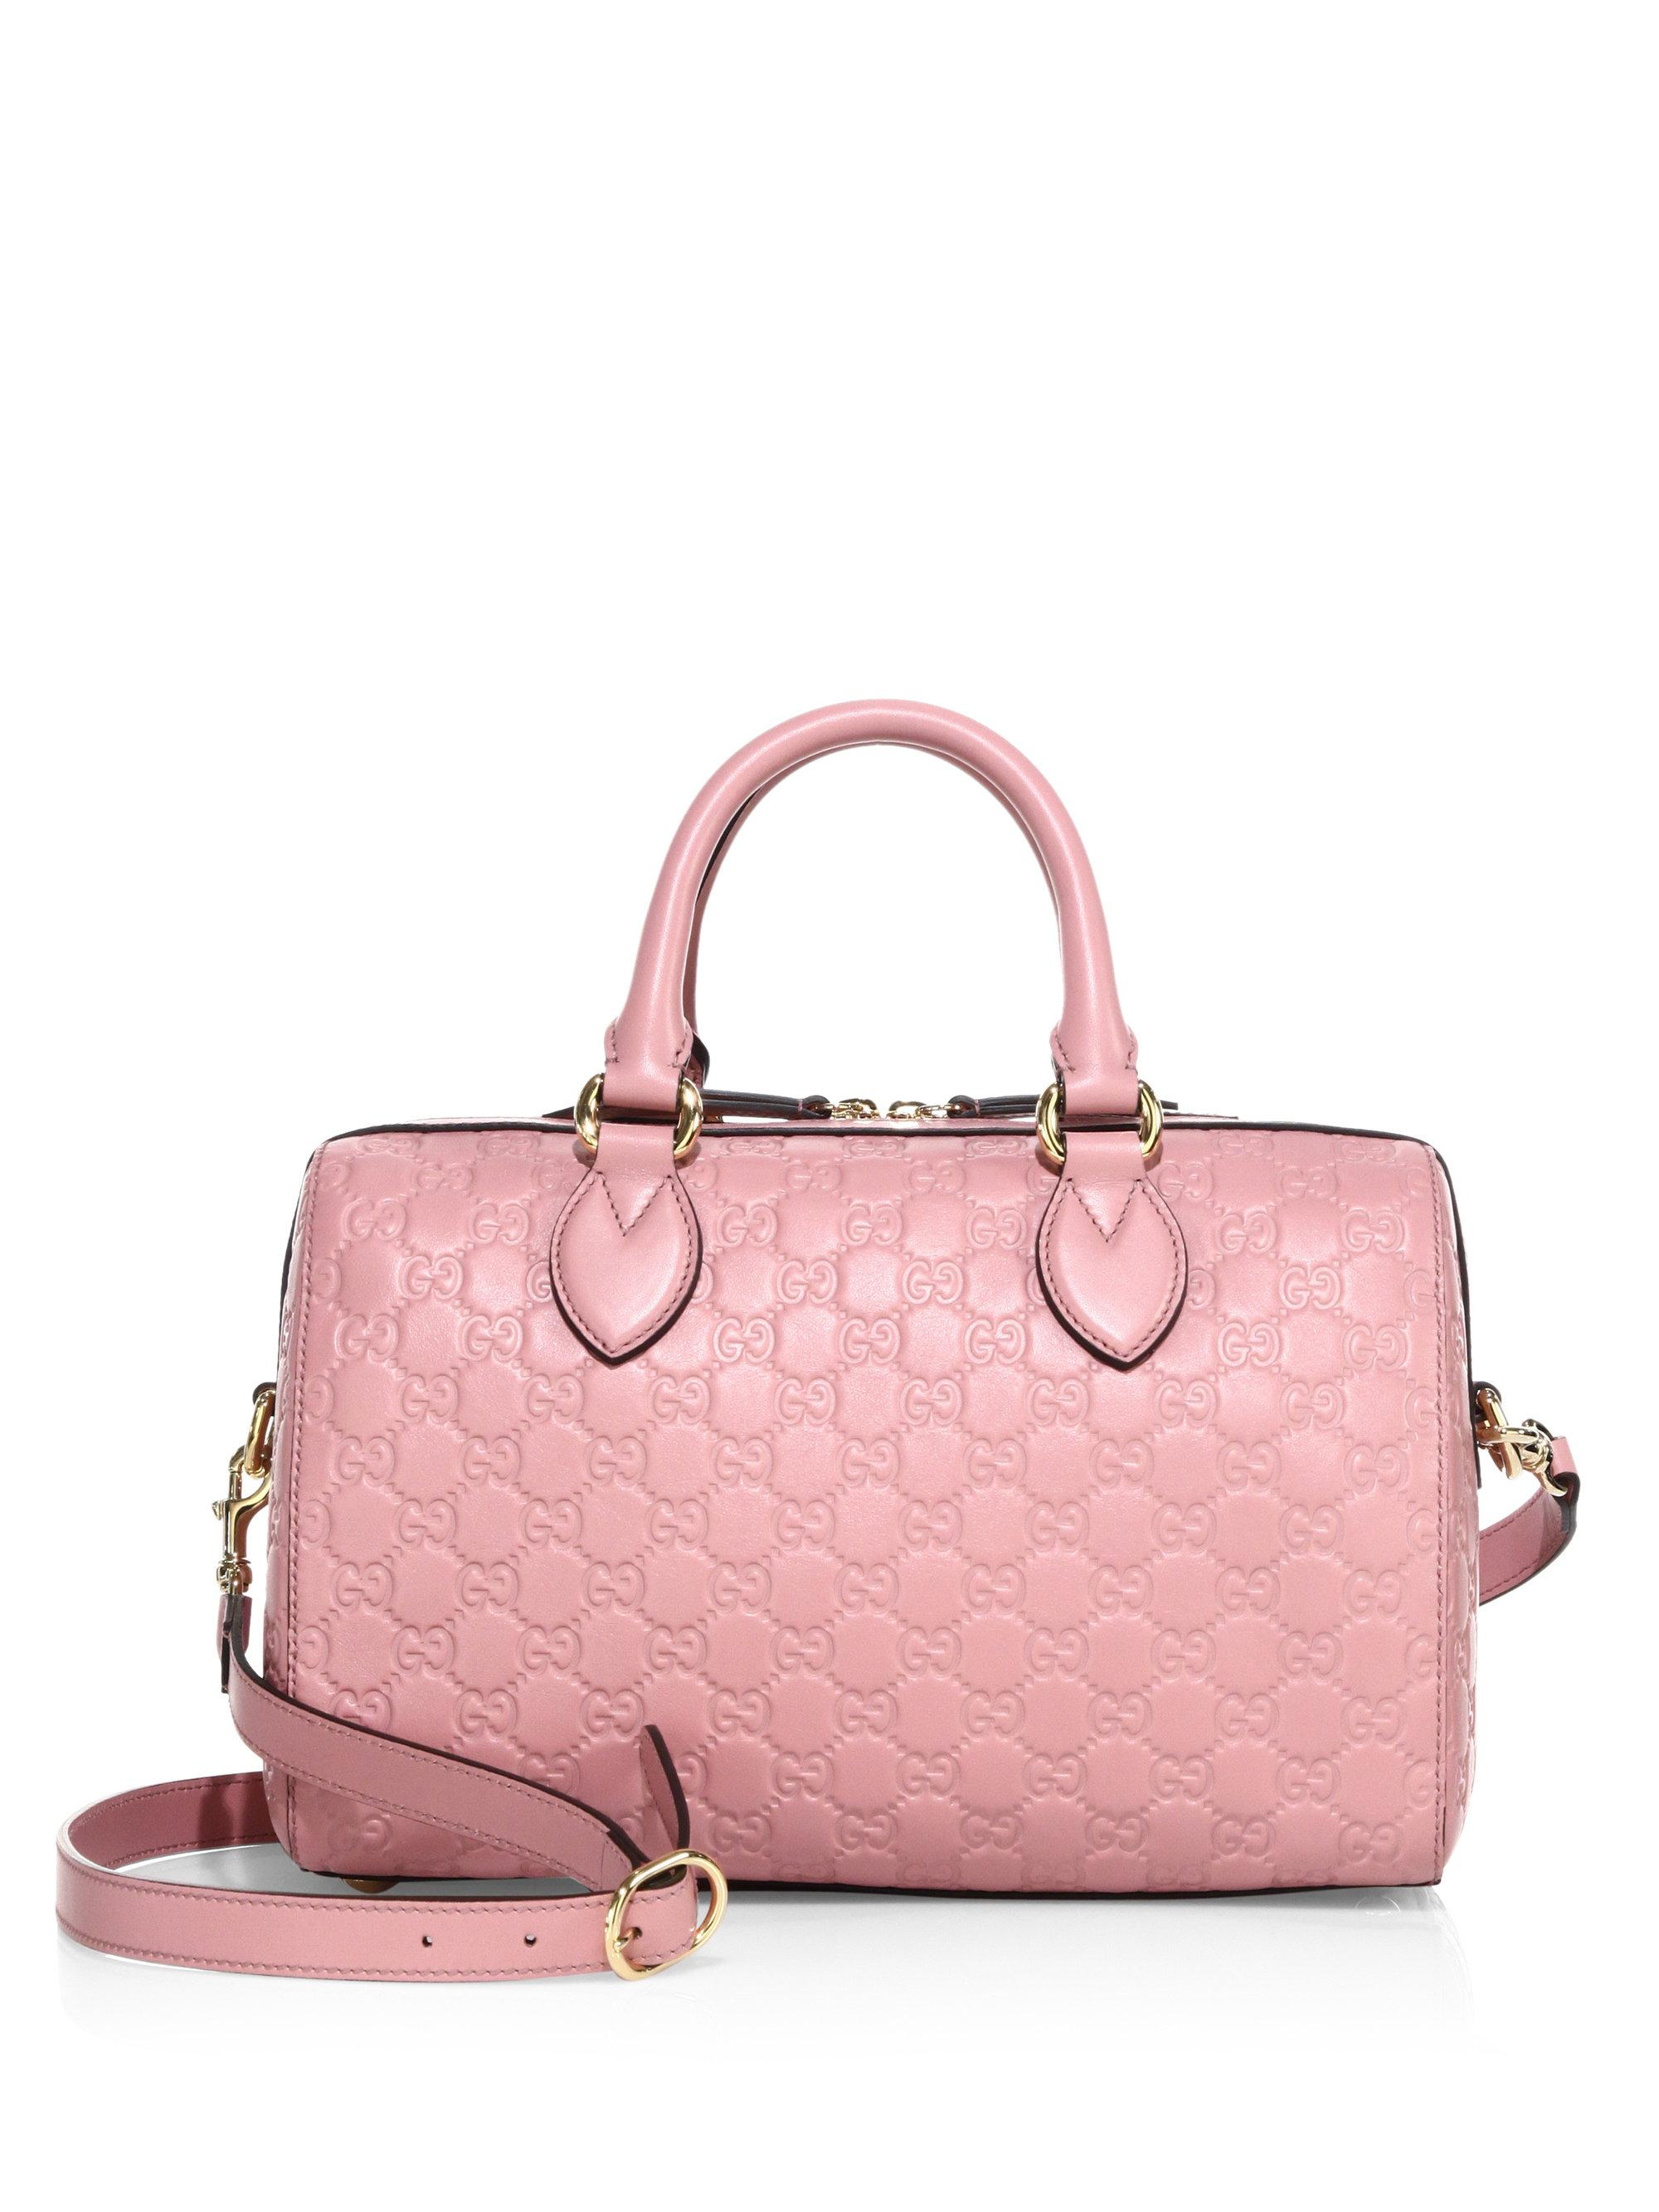 37fabbc7def8 Gucci Medium Soft Signature Leather Boston Bag in Pink - Lyst